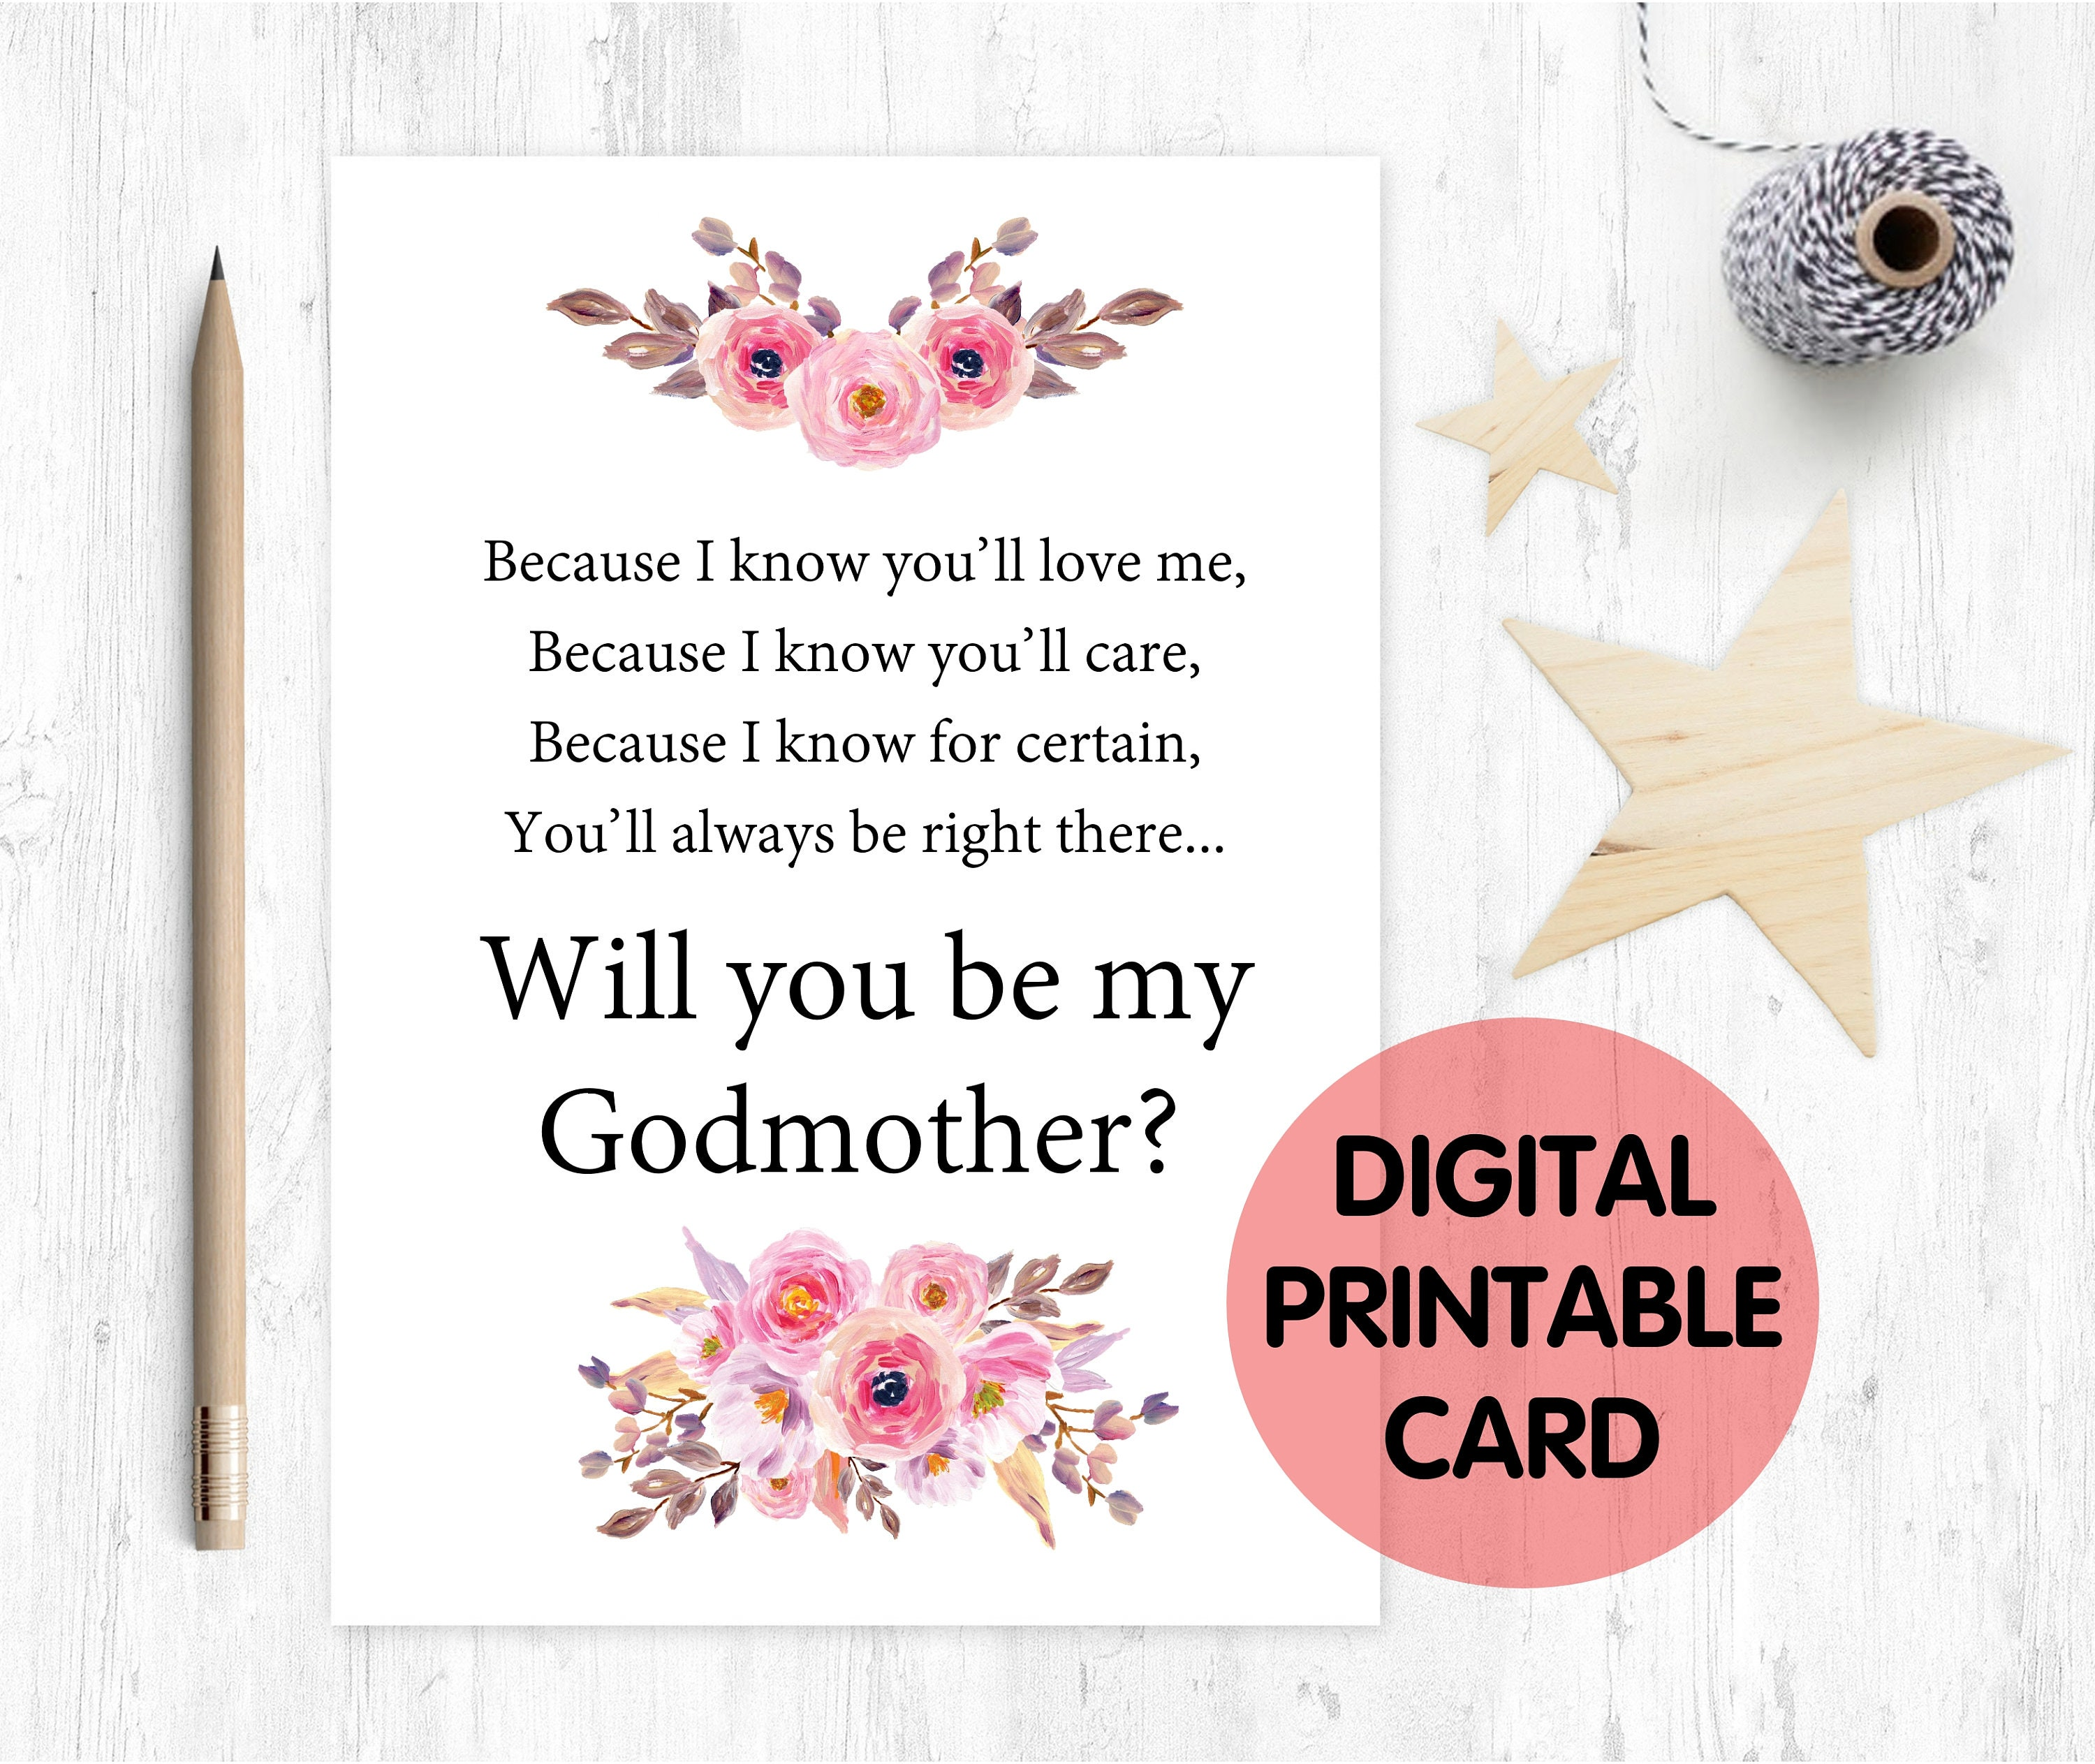 Printable will you be my godmother card godmother card printable printable will you be my godmother card godmother card printable godmother card godmother poem floral godmother poem card printable m4hsunfo